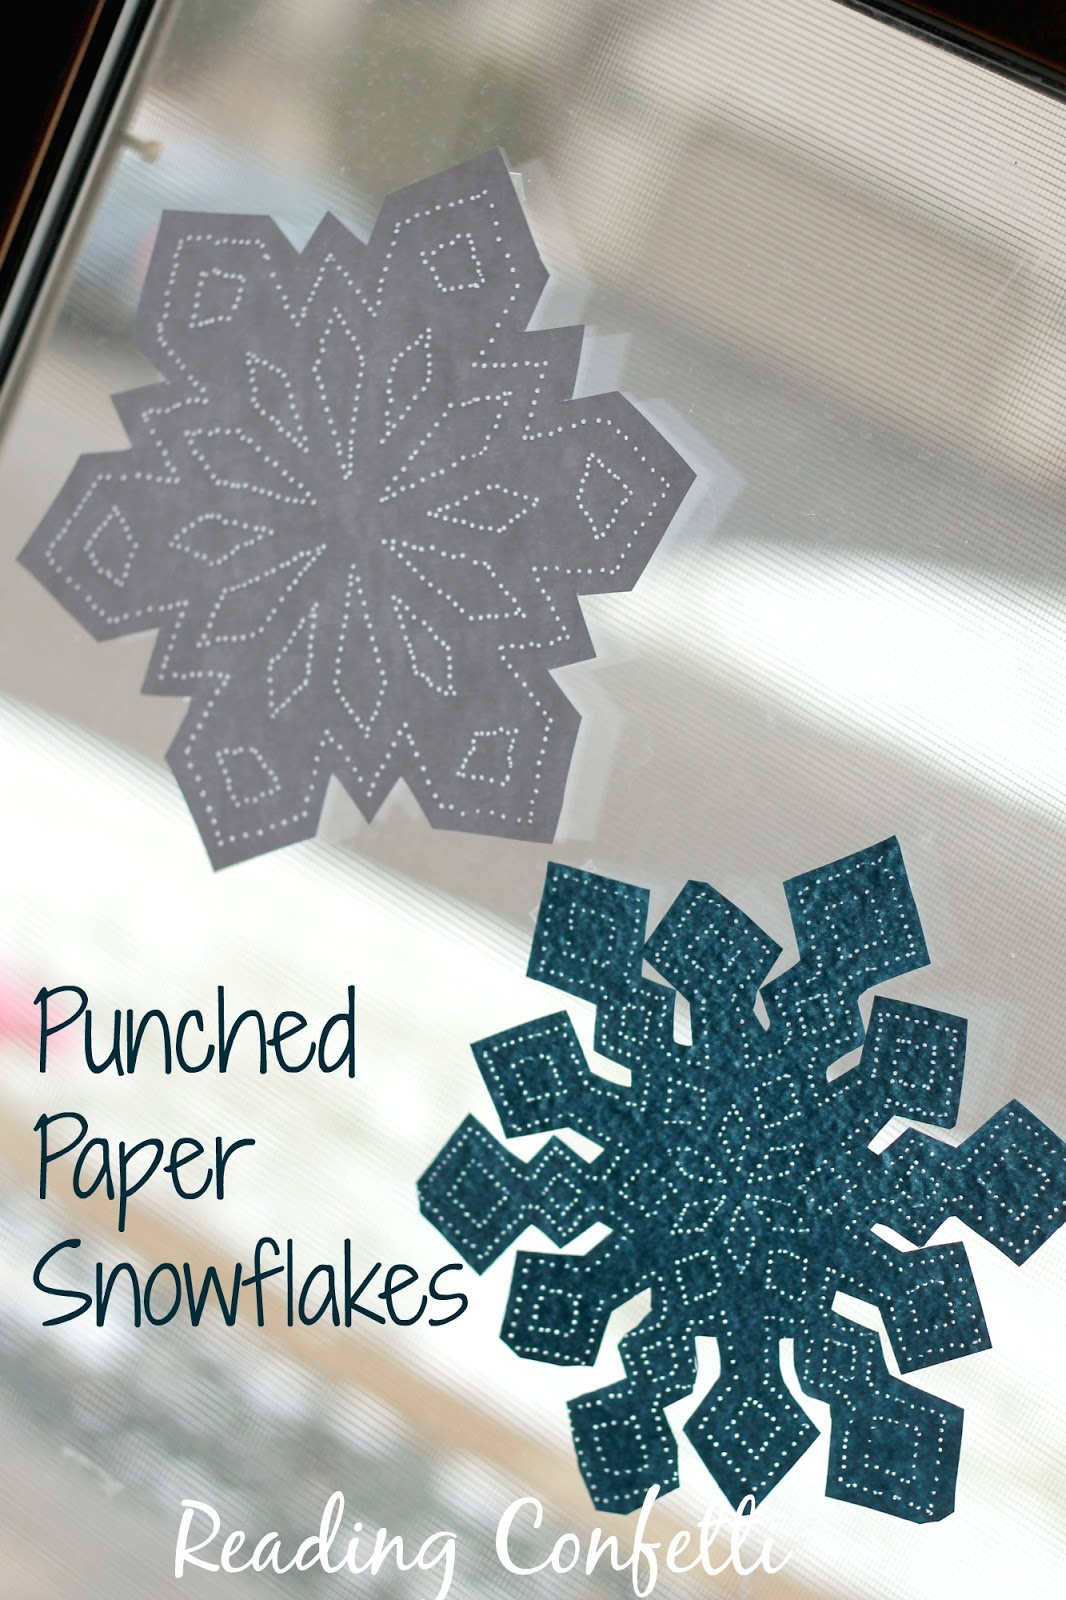 Punched paper snowflakes are a great craft to keep the kids busy during winter break.